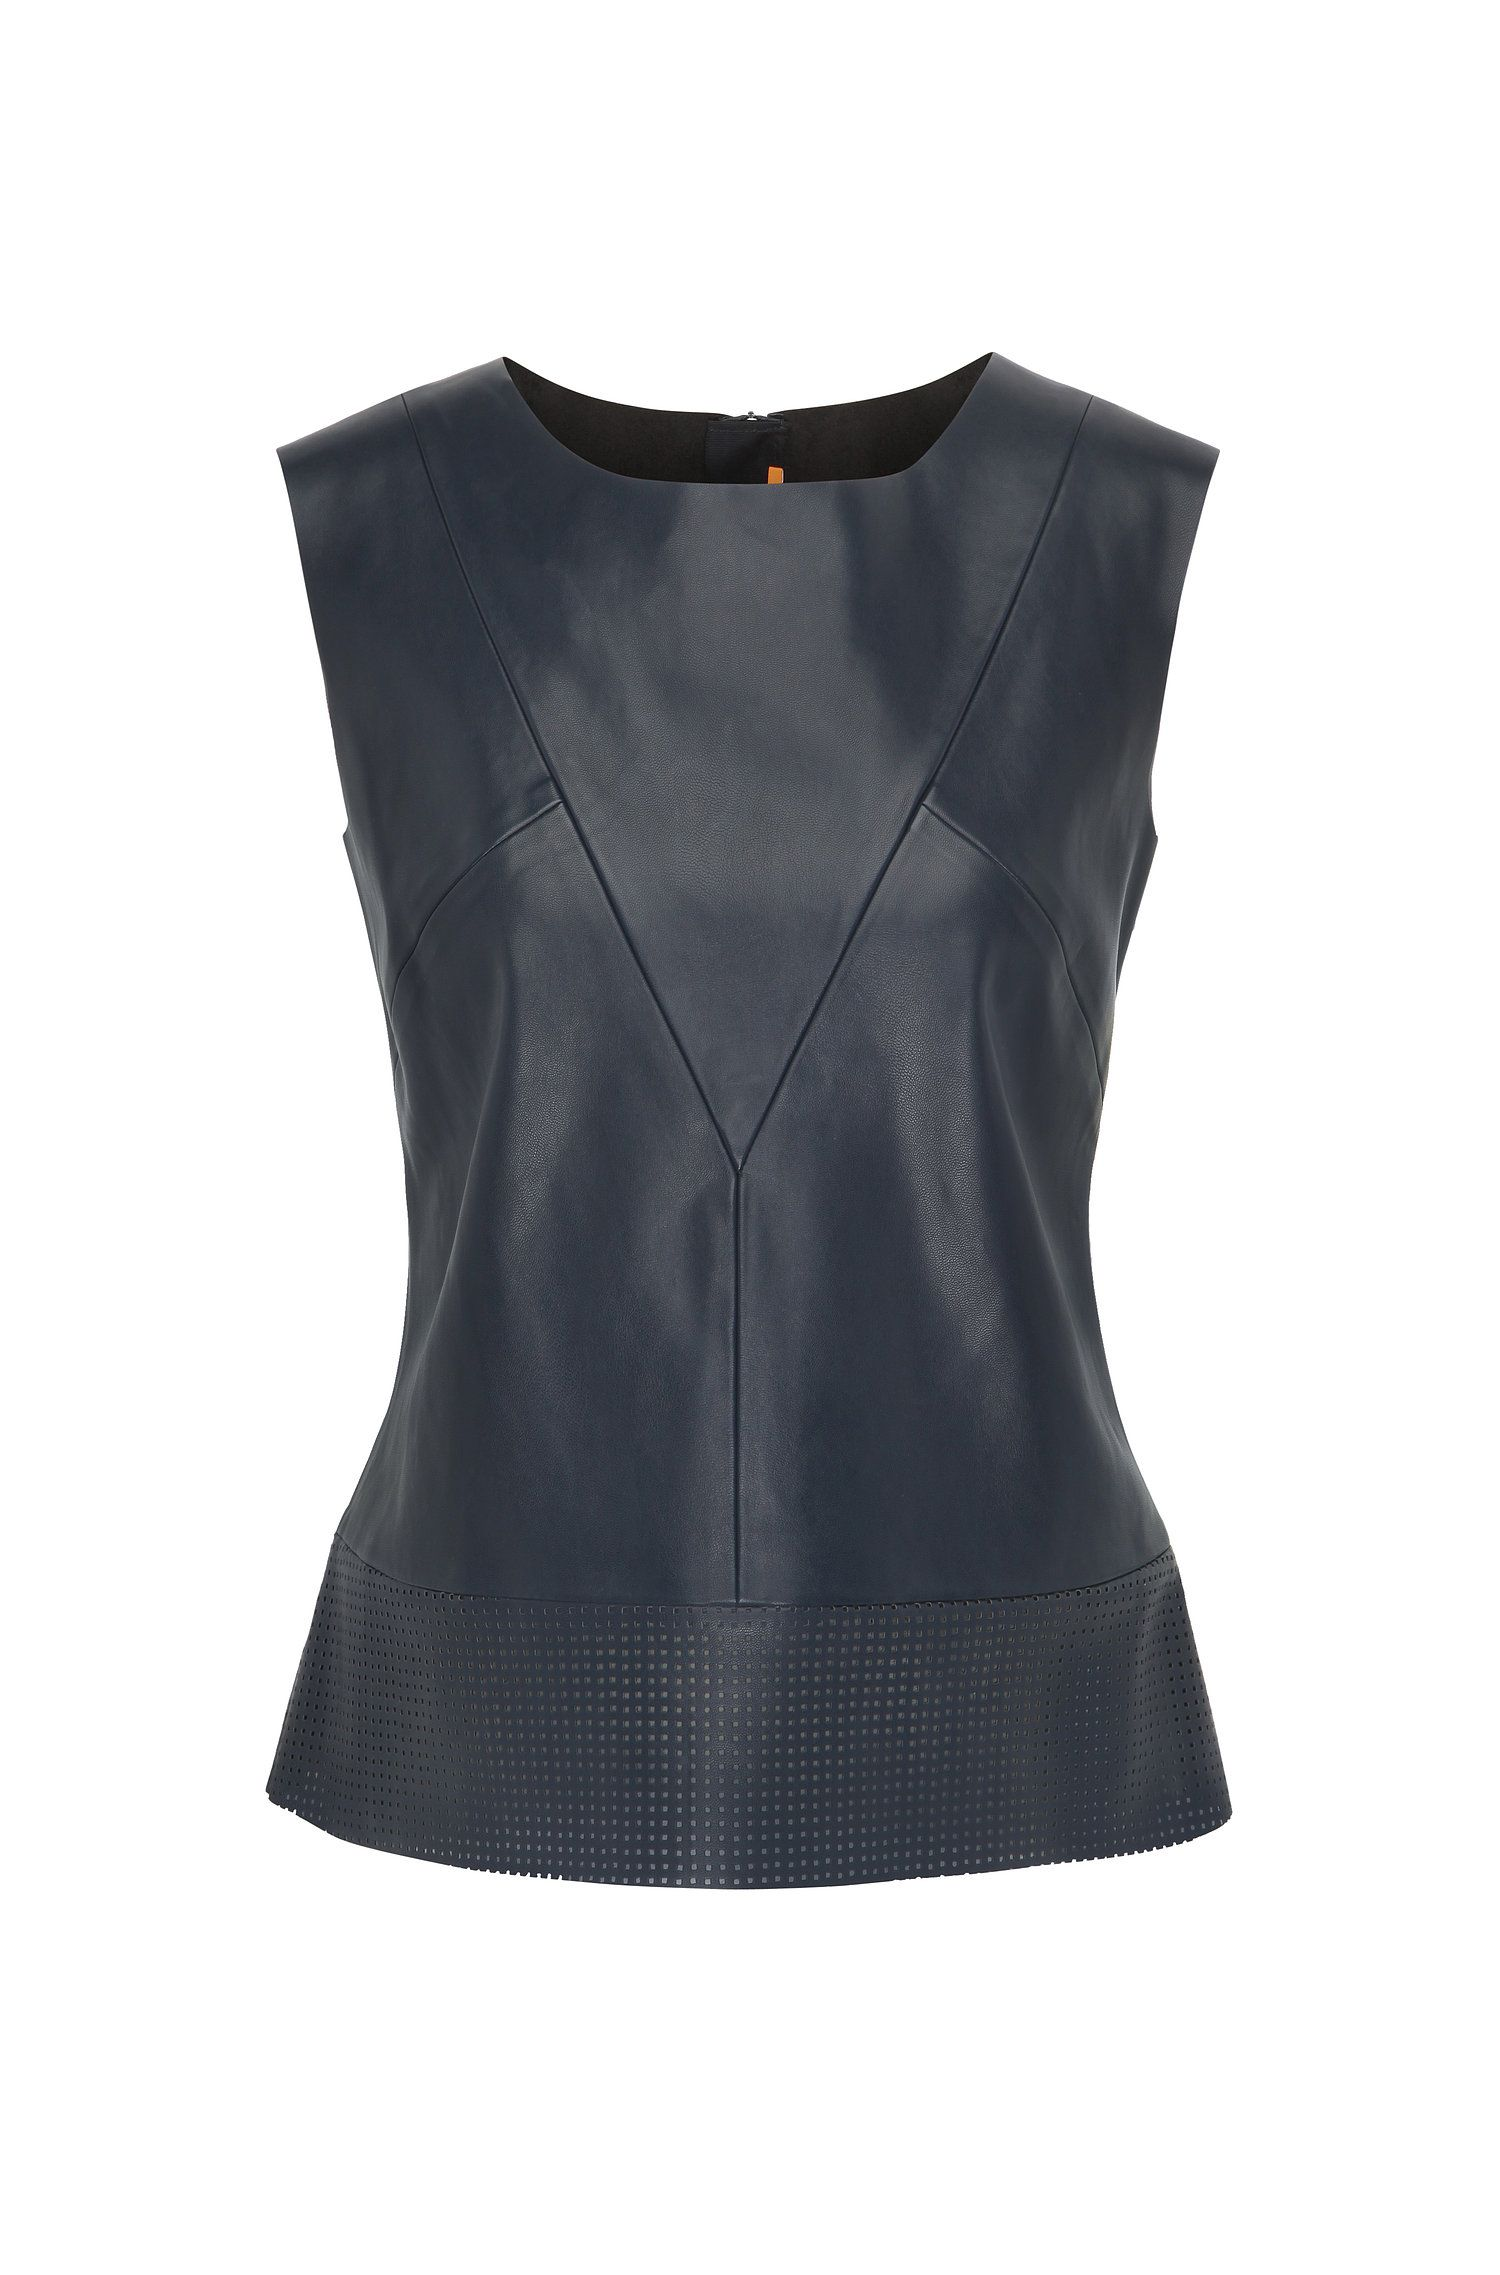 Faux leather sleeveless top with perforated hem